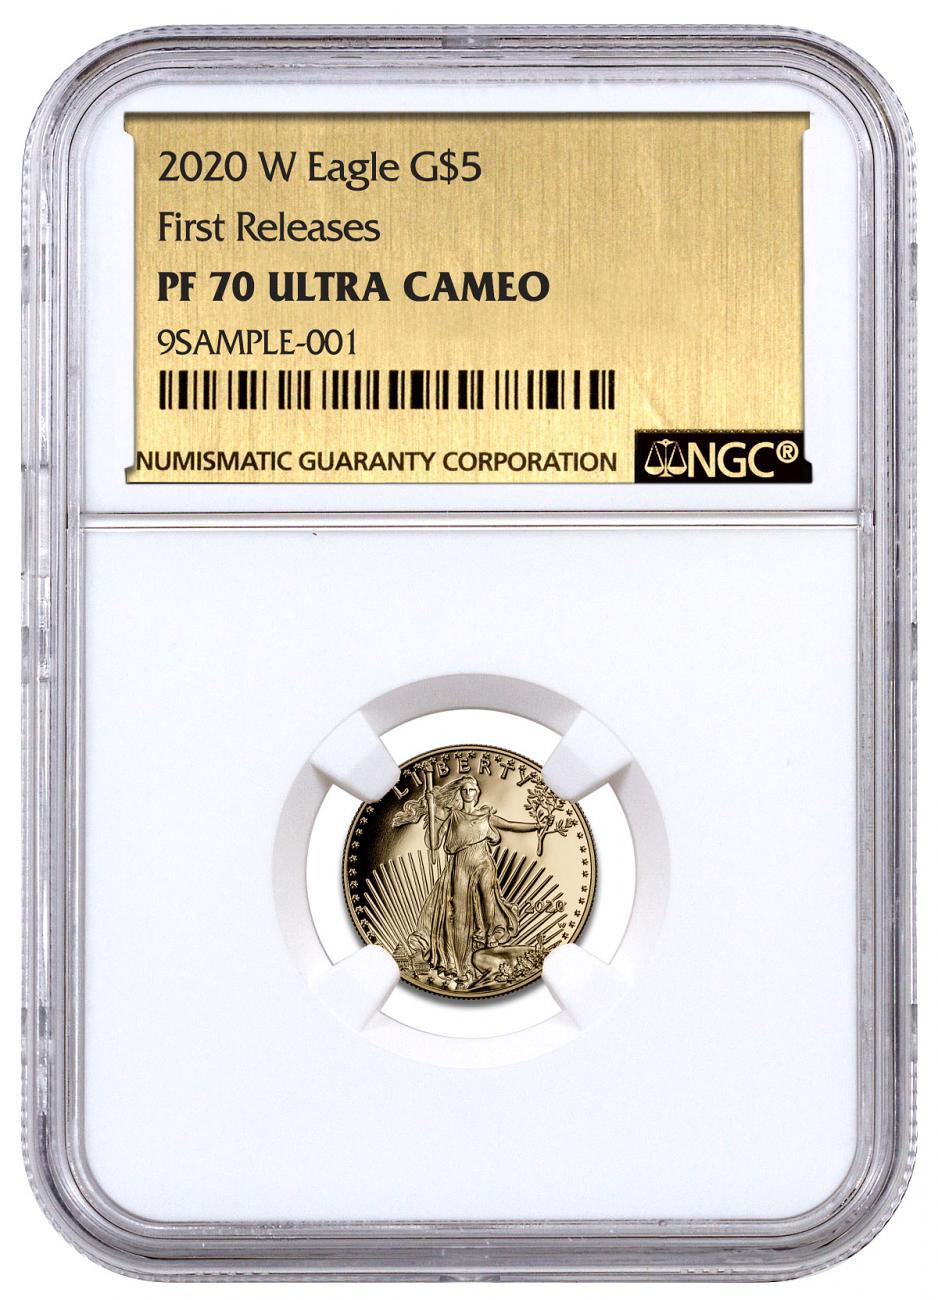 2020-W 1/10 oz Gold American Eagle Proof $5 Coin NGC PF70 UC FR Exclusive Gold Foil Label